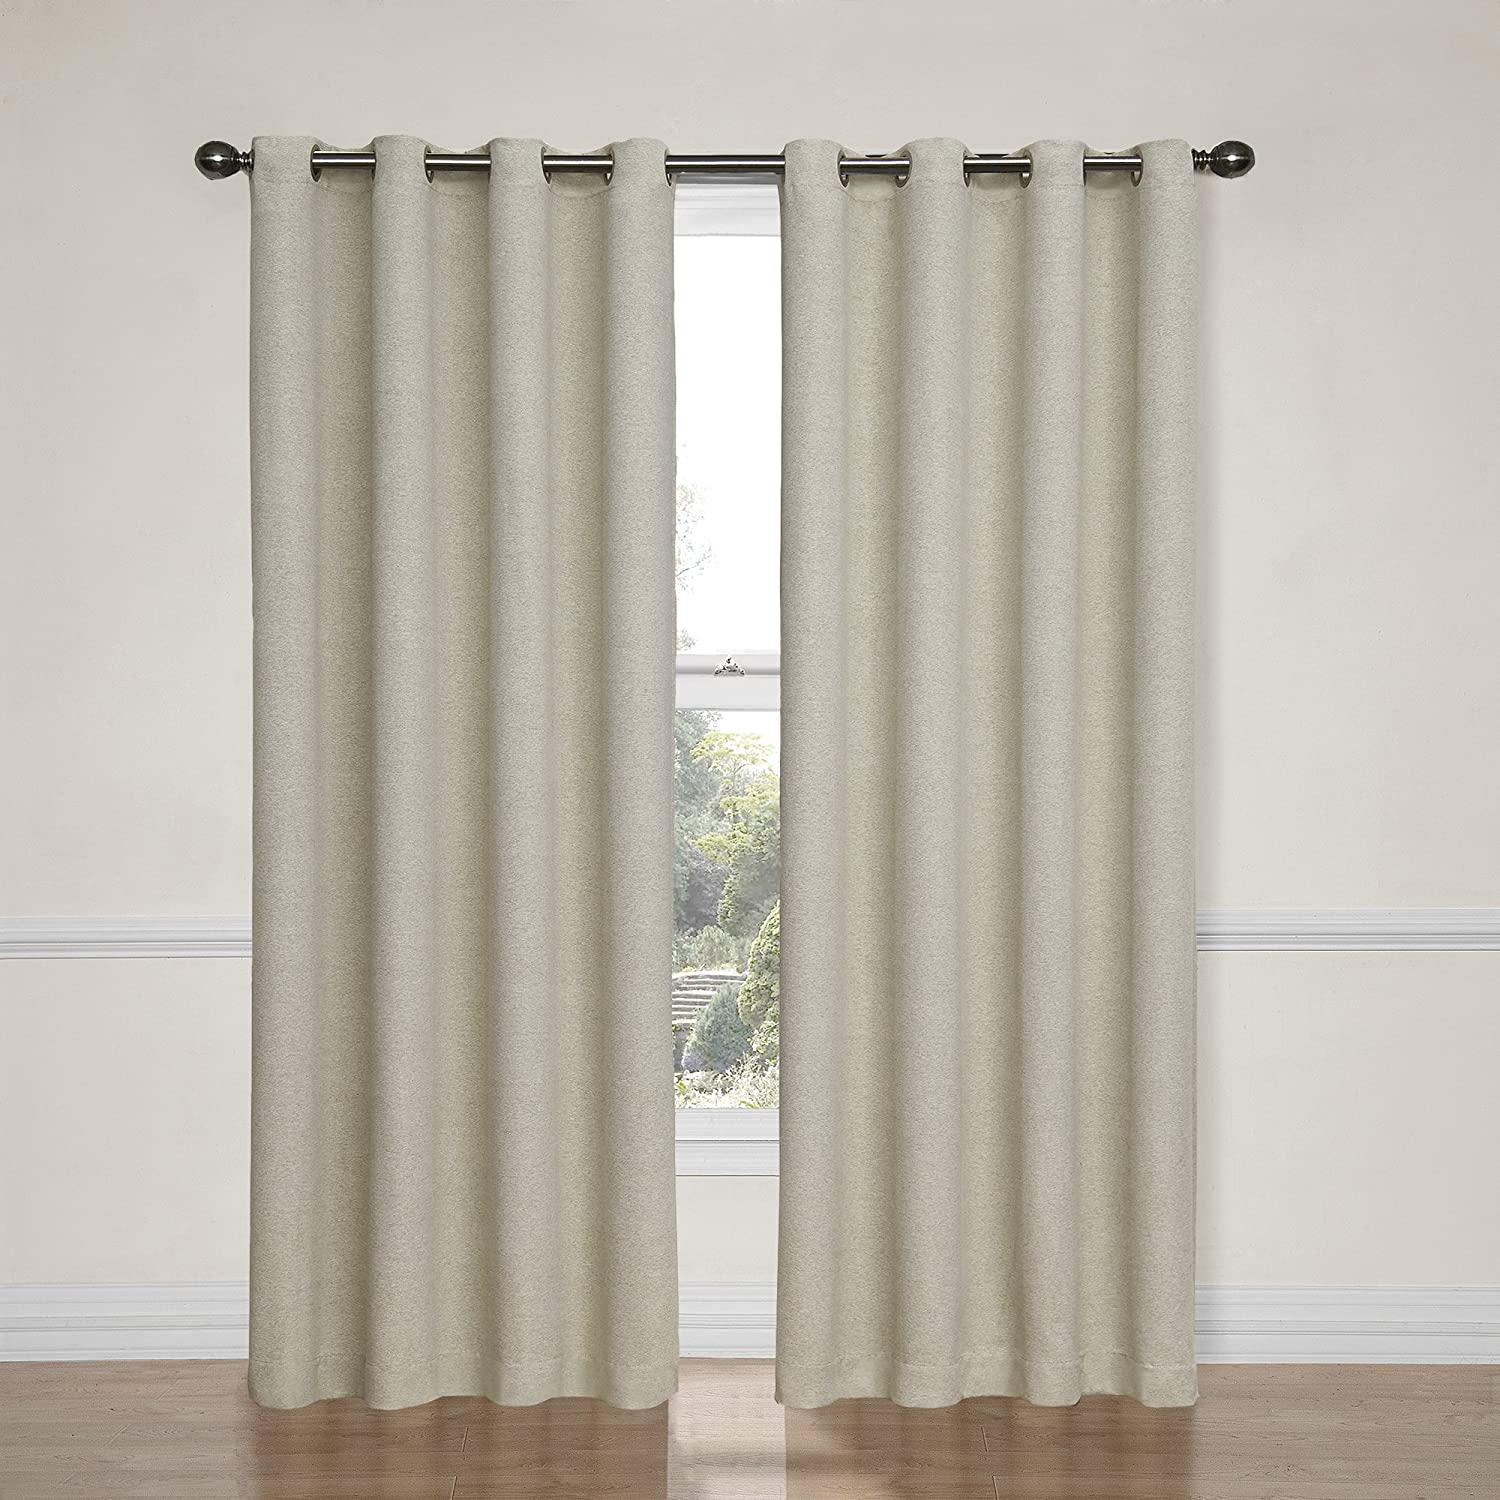 panel laura sheer panels to frosting ivory drapes p ashley x embroidered curtain click expand